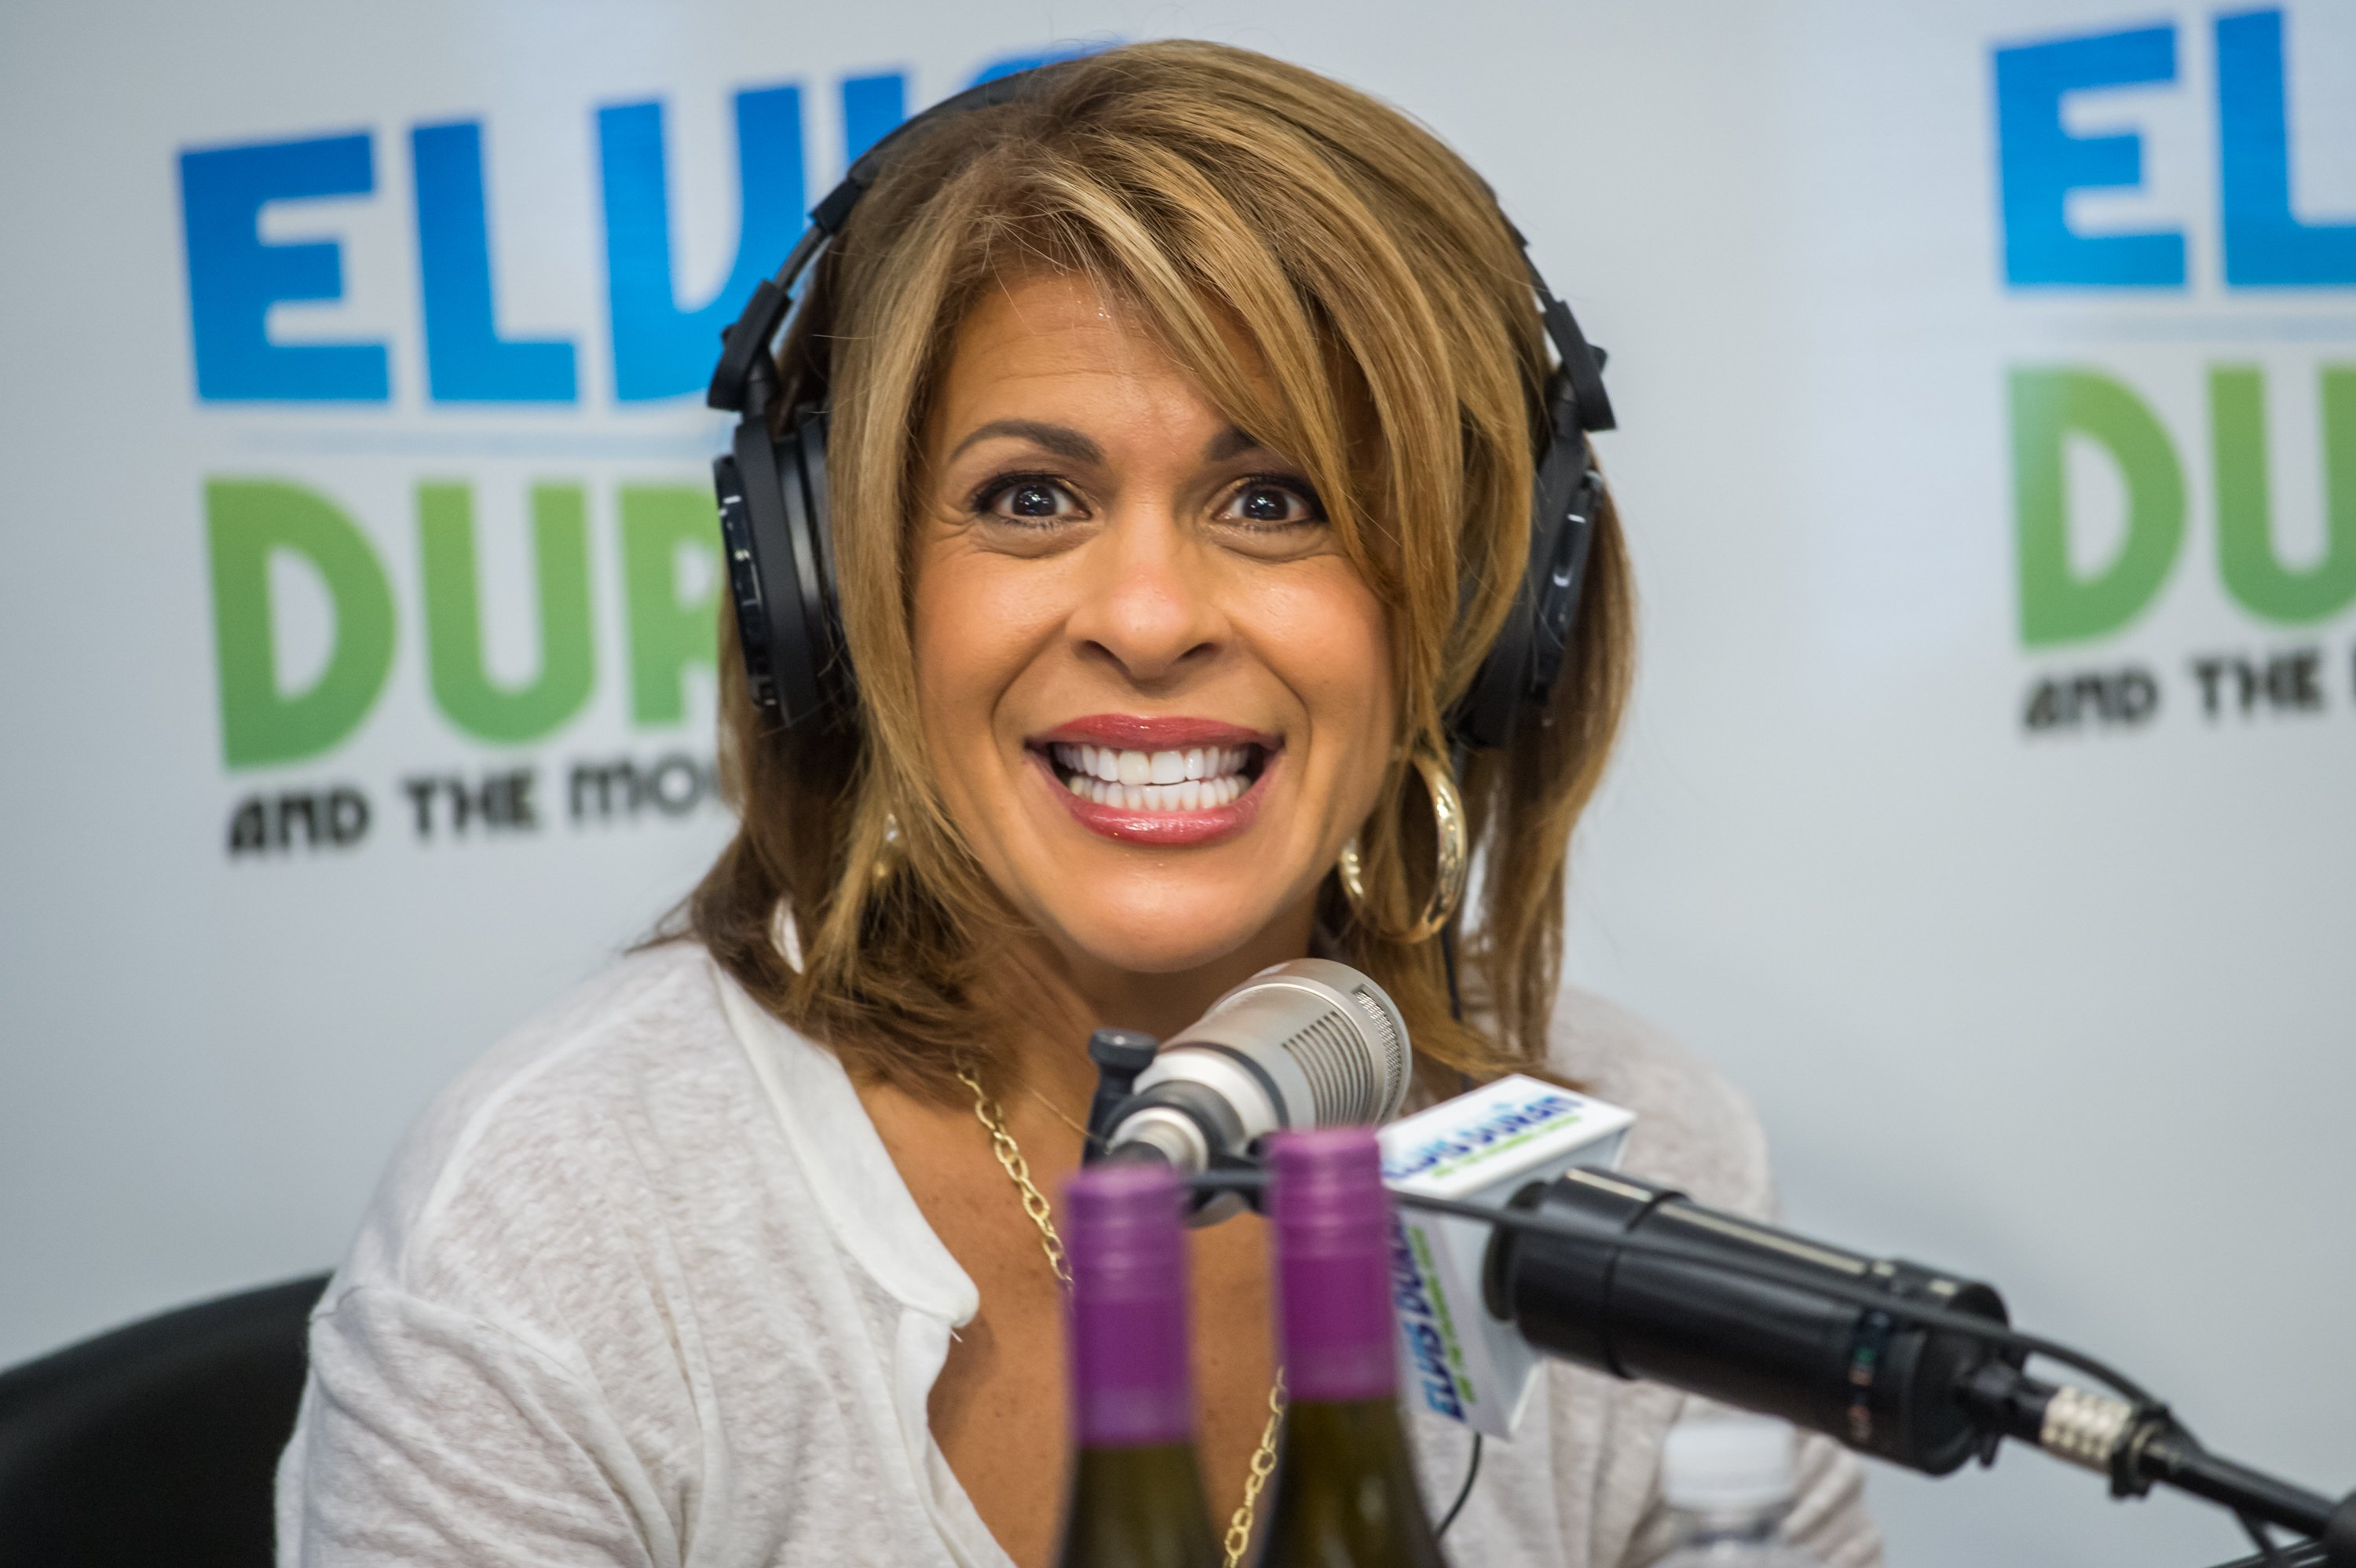 """""""Today"""" host Hoda Kotb during her 2015 visit in Z100 Studio's """"The Elvis Duran Z100 Morning Show"""" in New York City. 